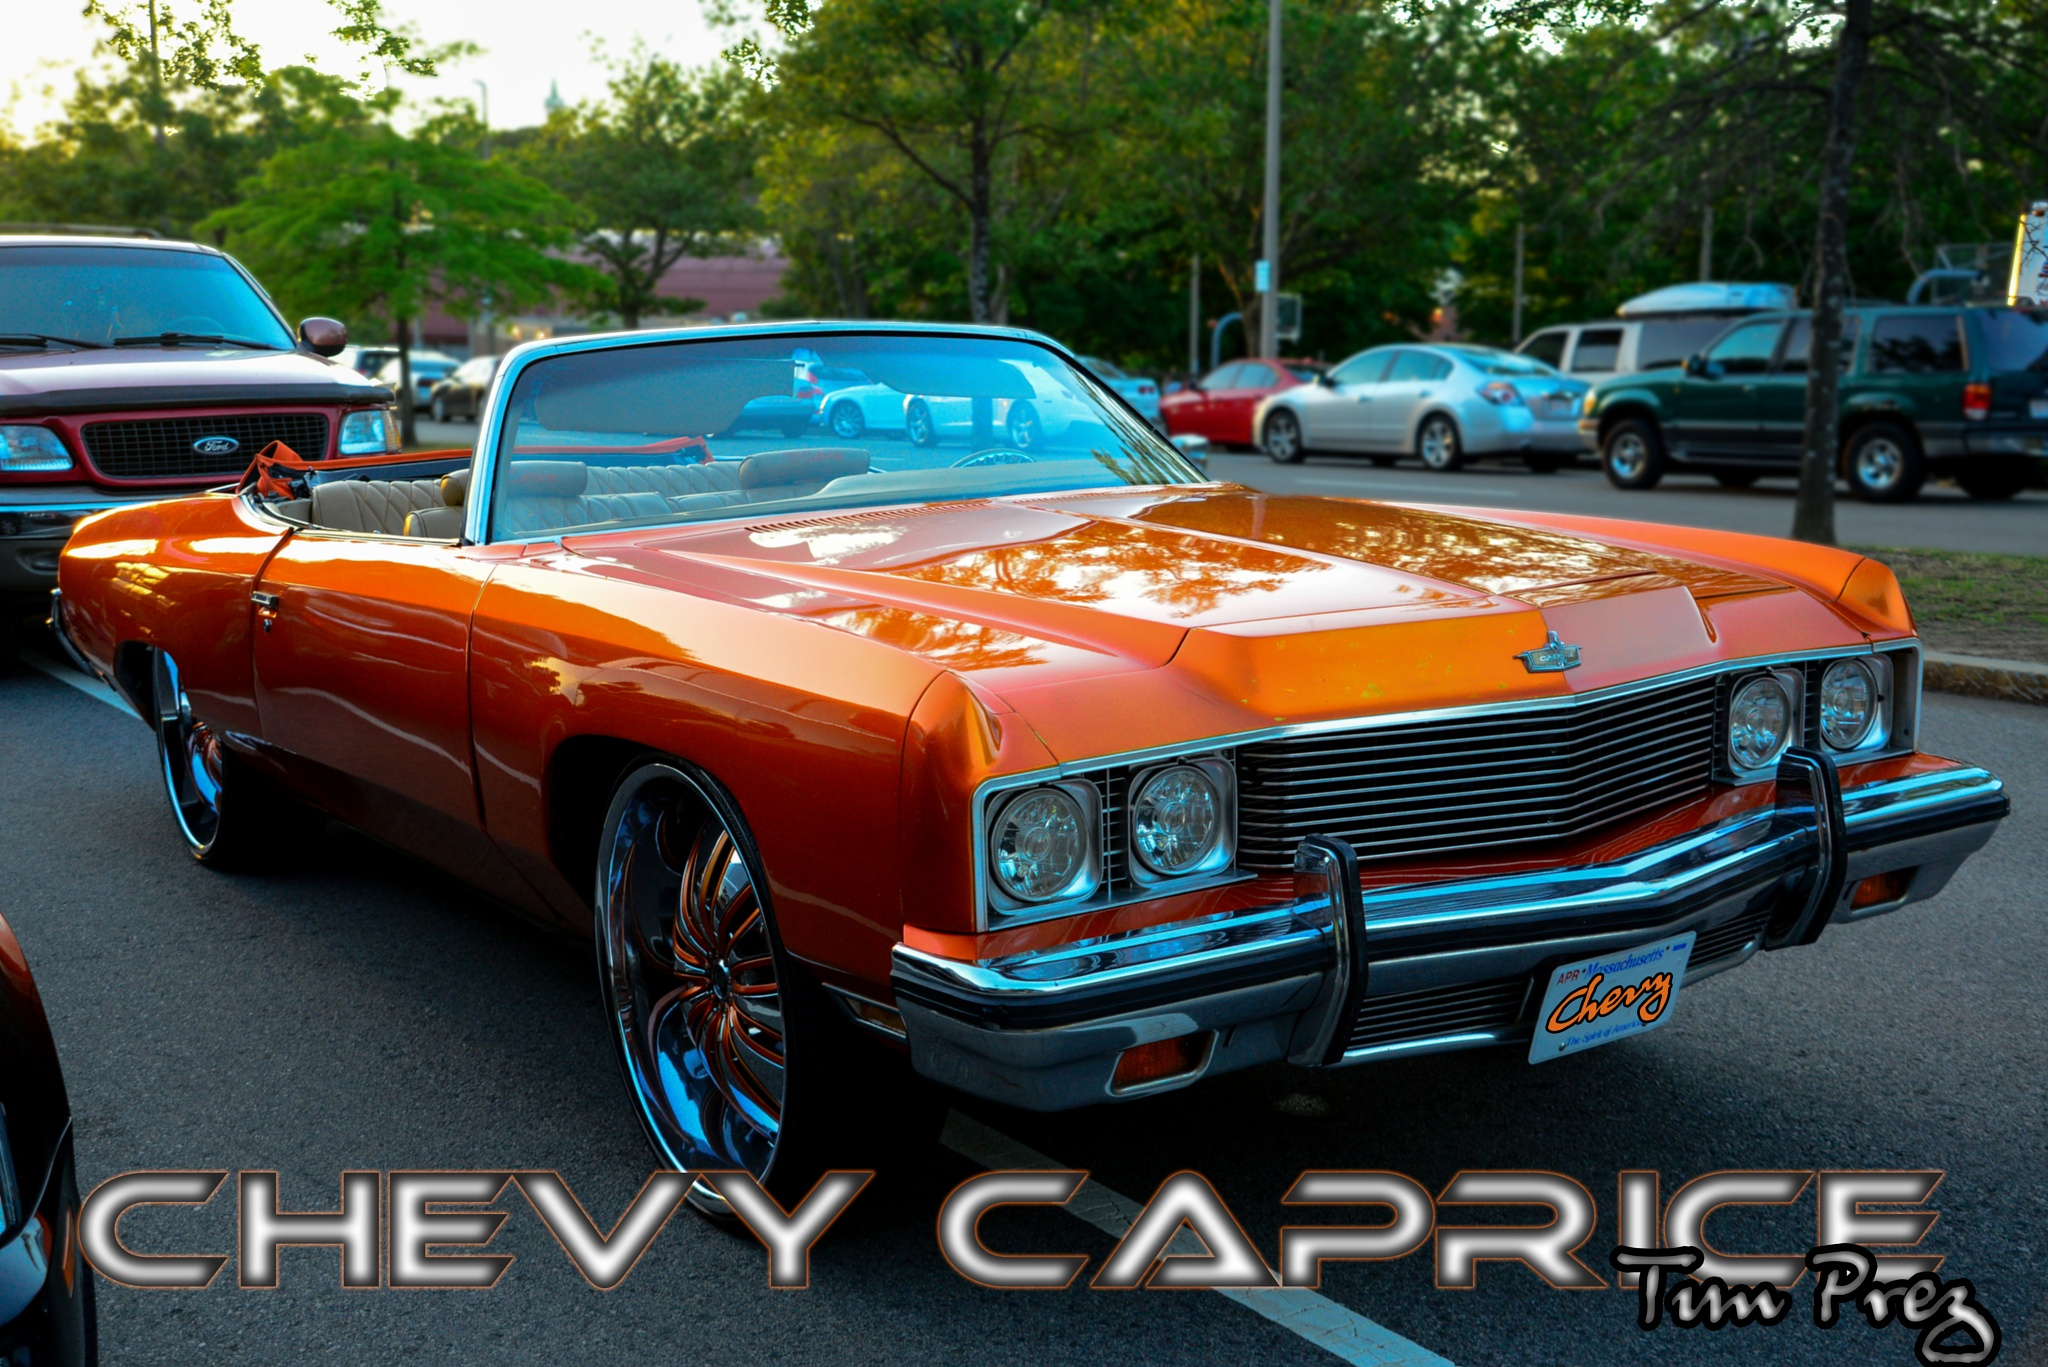 CHEVY CAPRICE AT WASHINGTON PARK.. by picturemeperfectphotography